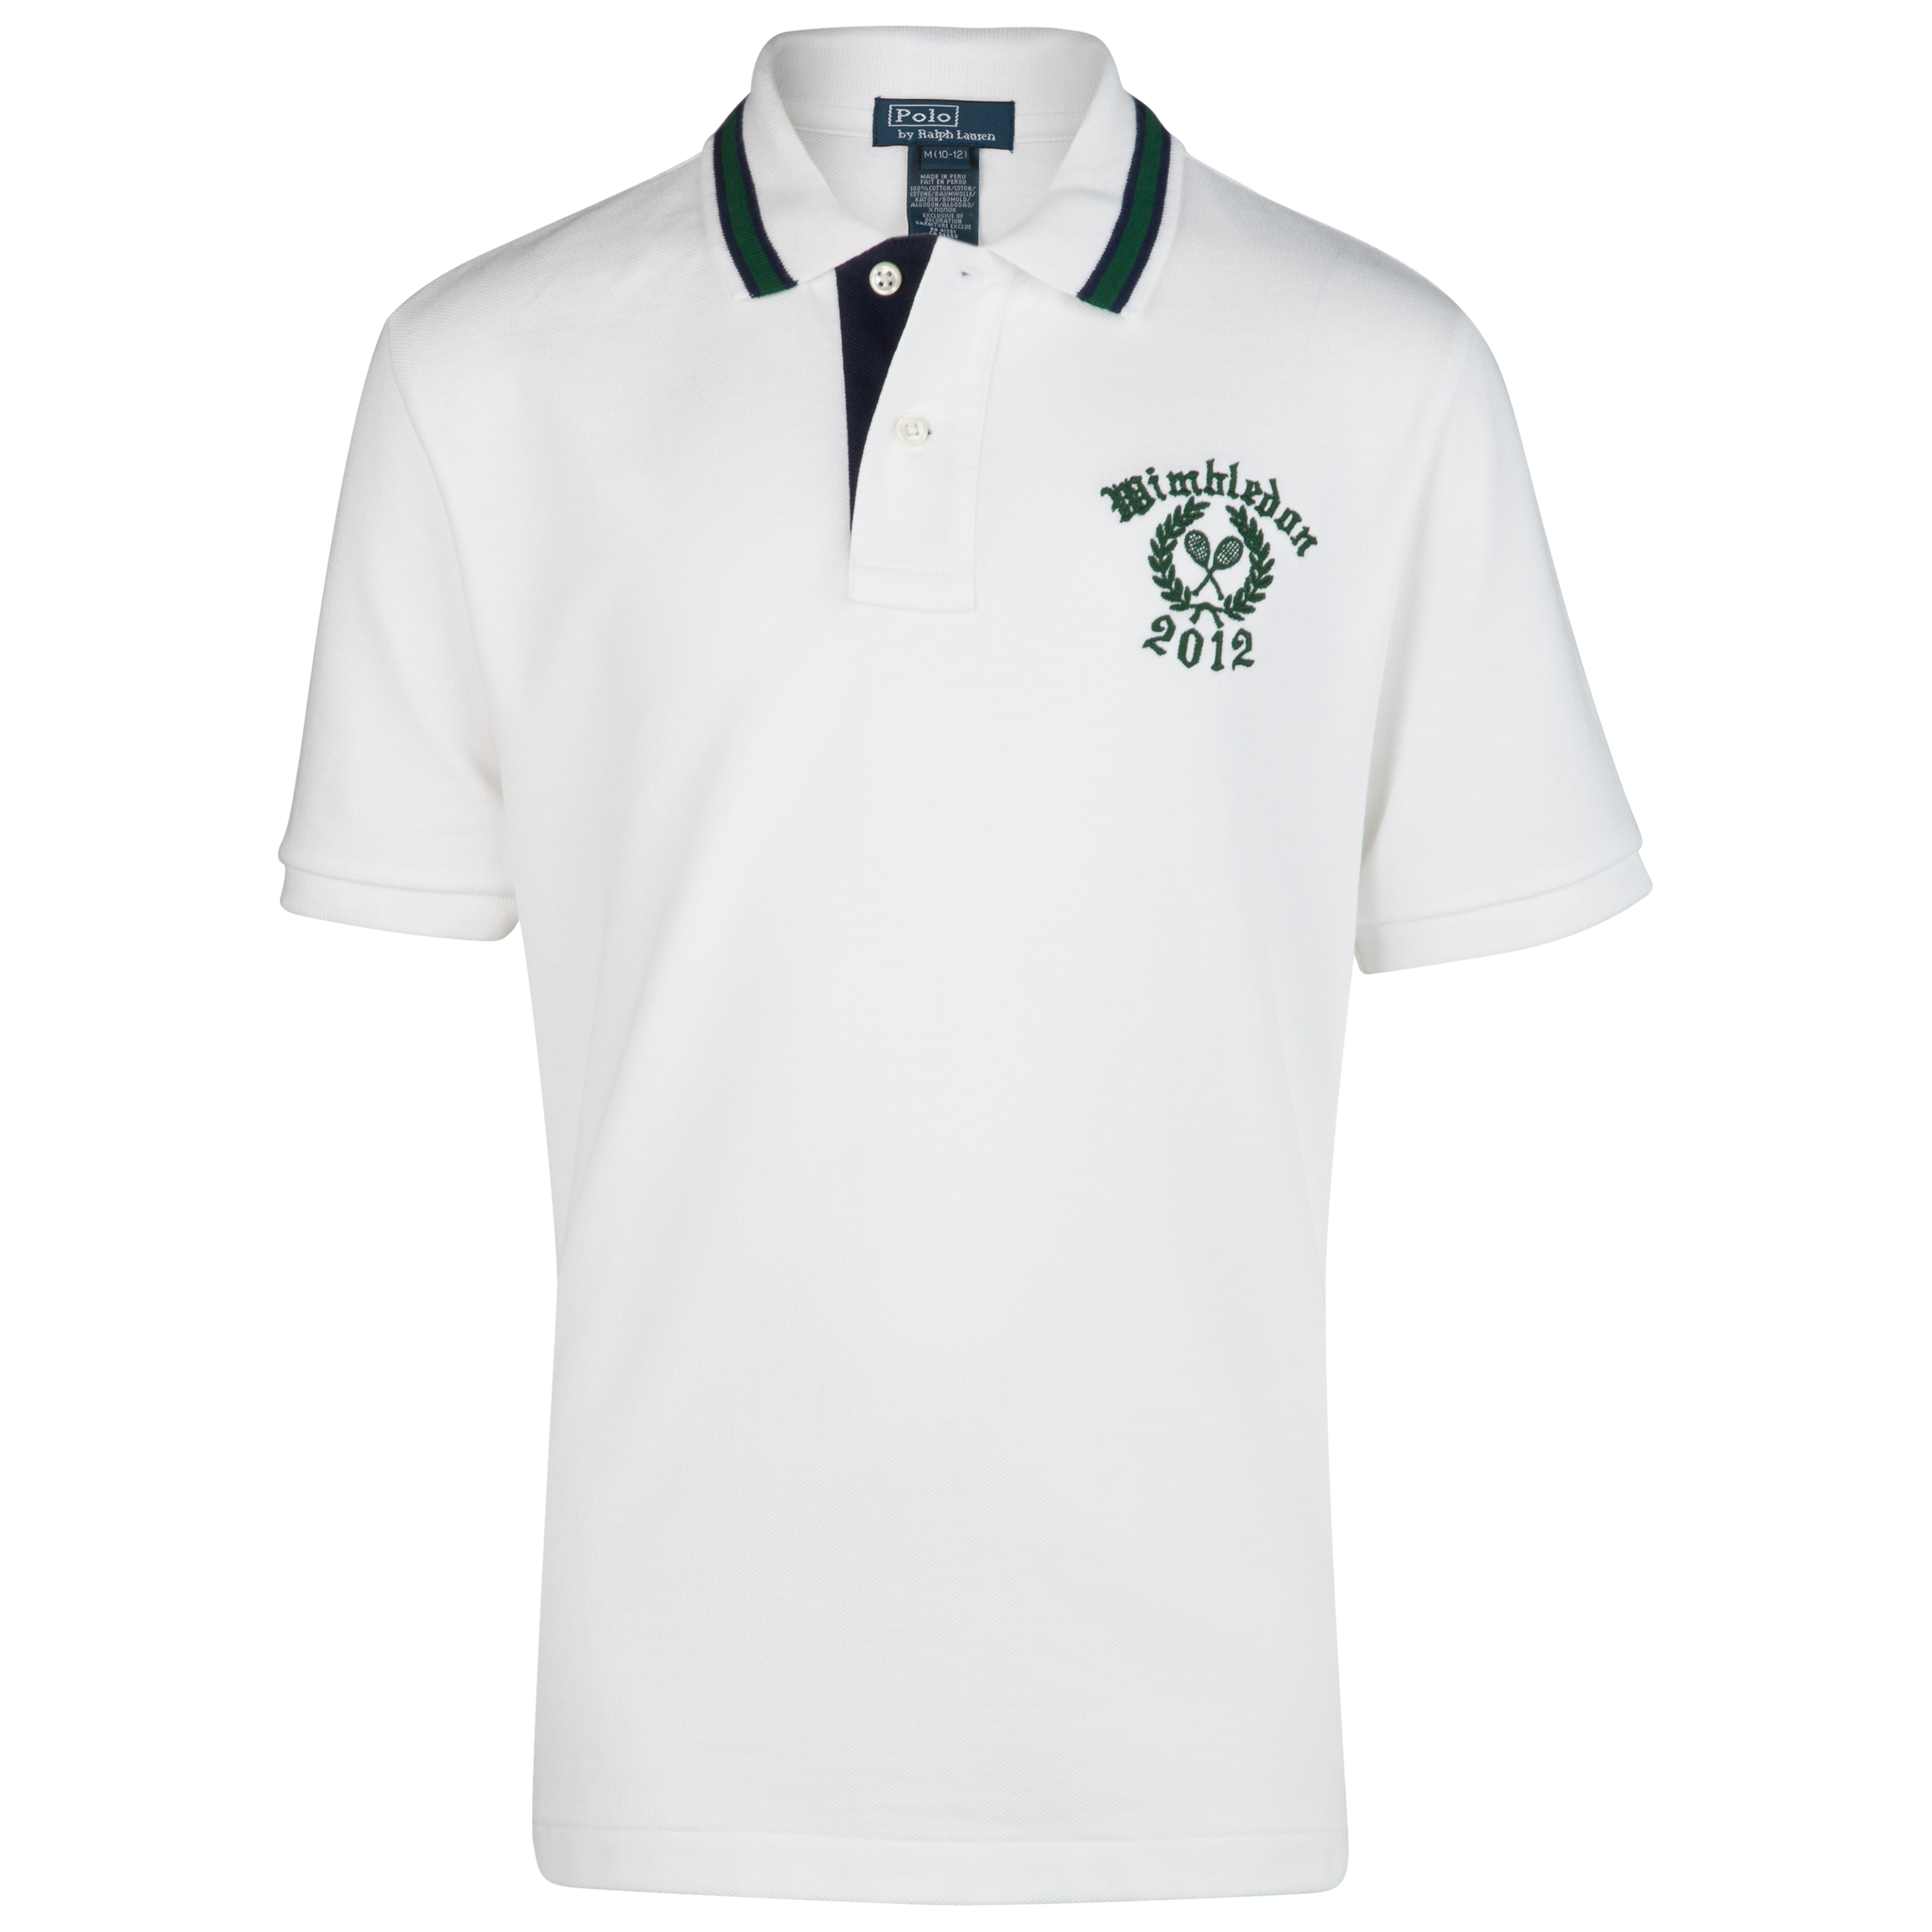 Polo Ralph Lauren Wimbledon Big PP Mesh Polo - Classic Oxford White - Older Boys